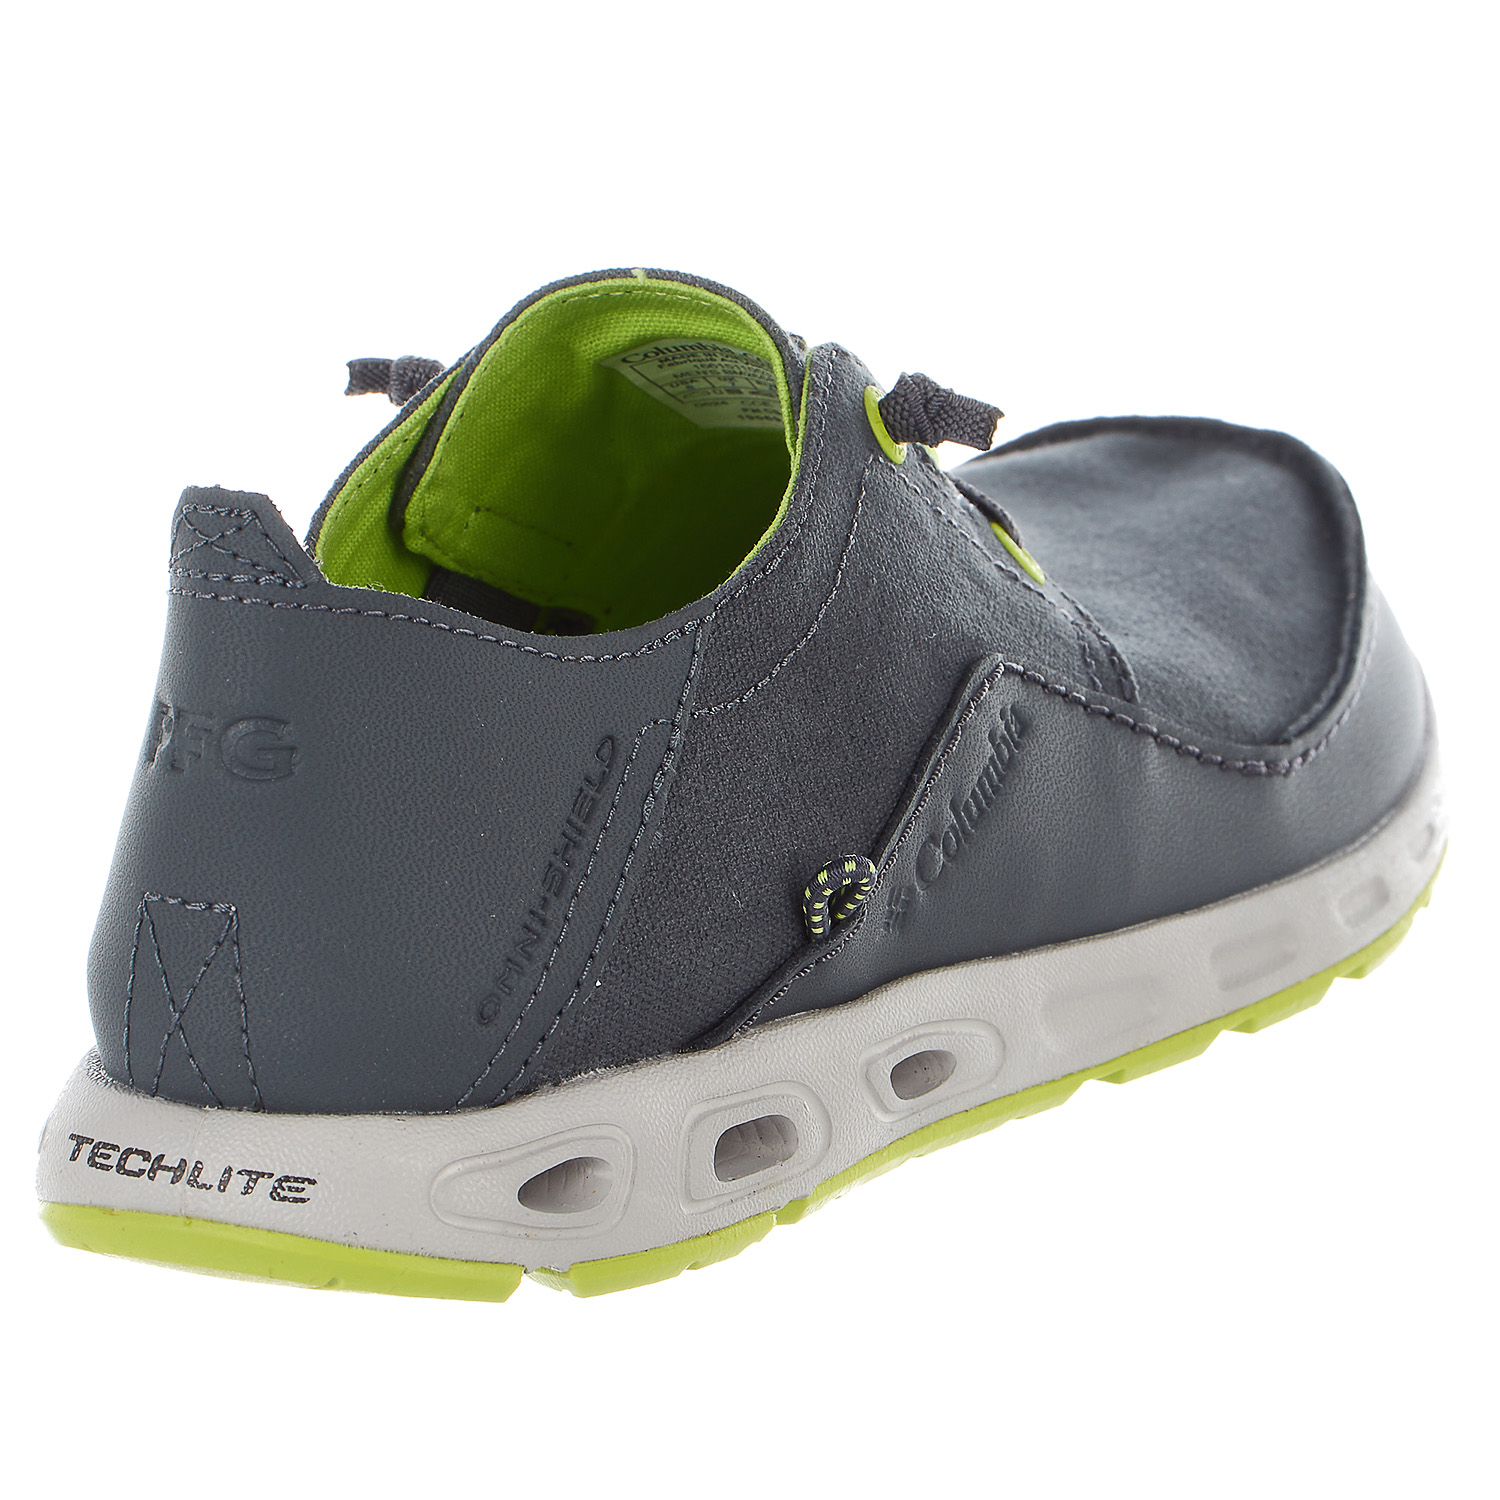 Columbia Bahama Vent Relaxed PF Shoes - Graphite-Fission - Mens - 8.5